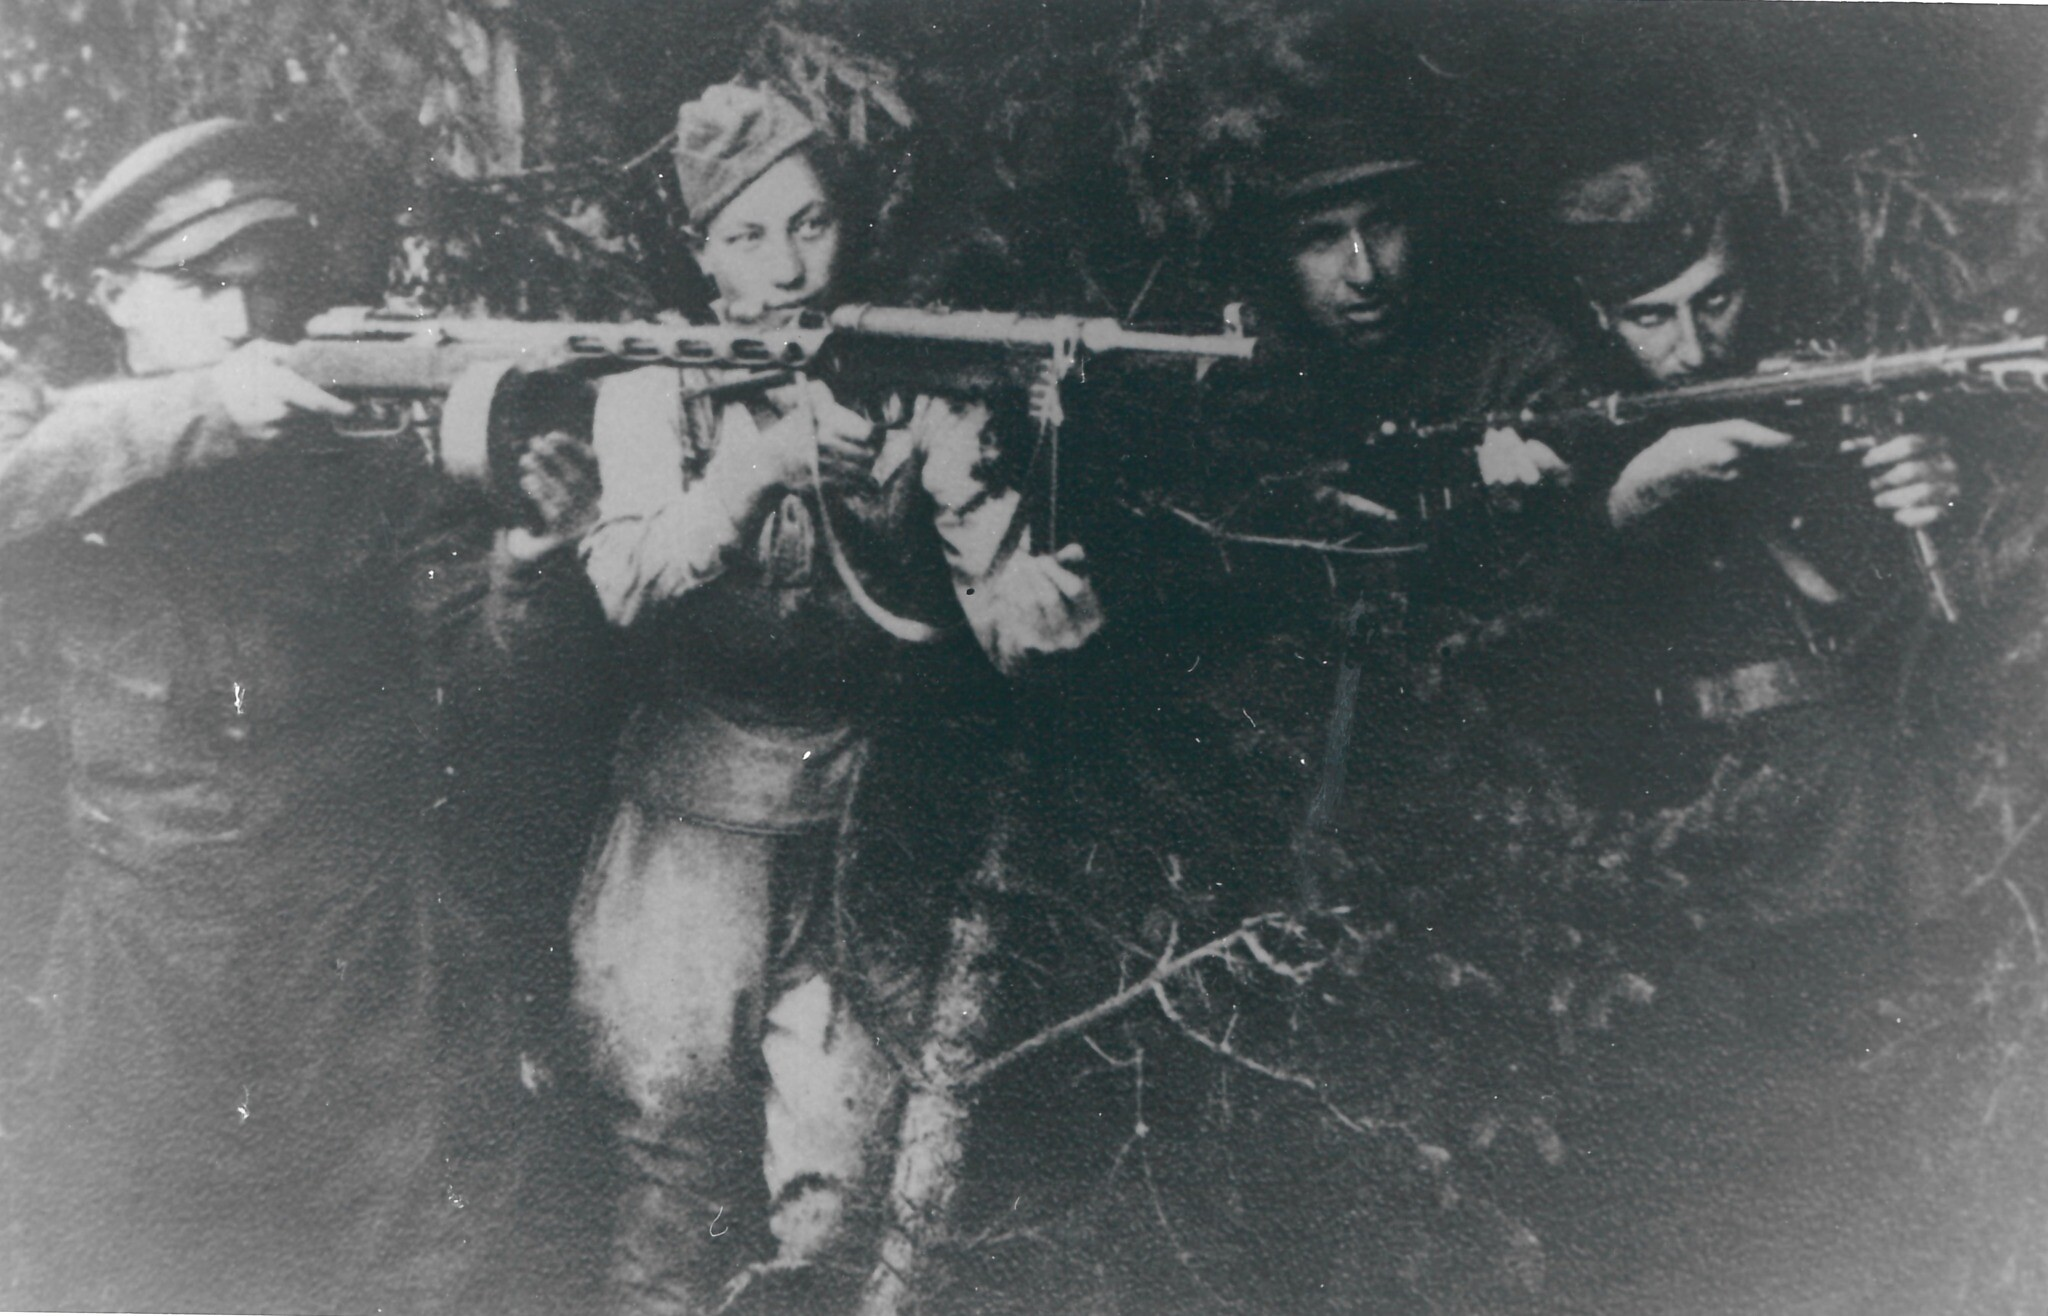 Group of Jewish partisan fighters in Soviet territories, circa 1942-1944. (Wiener Holocaust Library Collections)